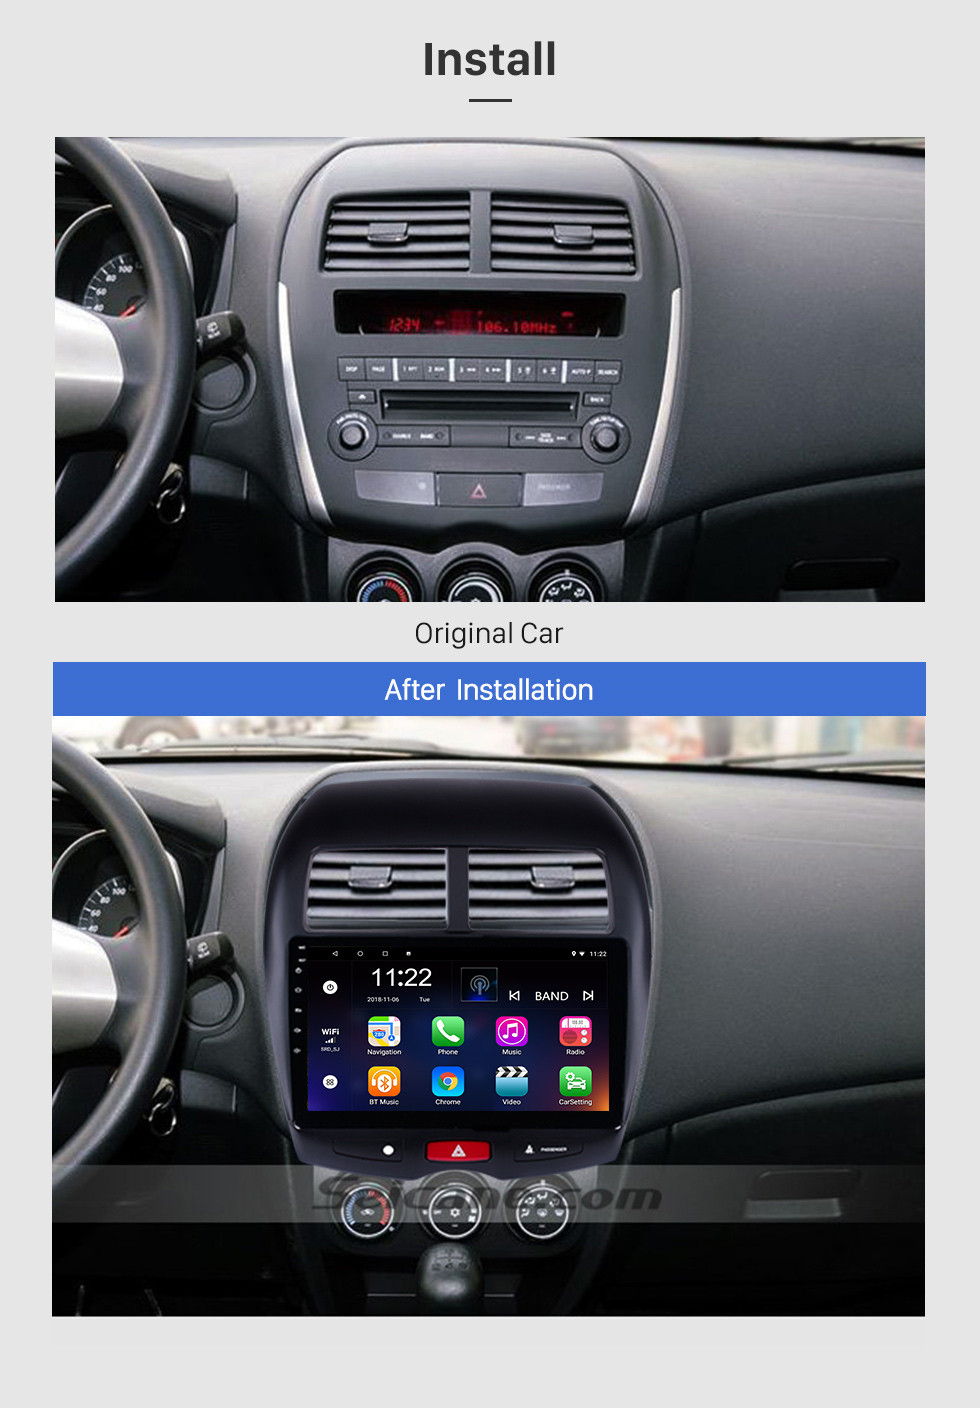 Seicane 2012 CITROEN C4 Android 8.1 Radio GPS navigation system Mirror link HD 1024*600 touch screen OBD2 DVR TV 1080P Video 3G WIFI Steering Wheel Control Bluetooth USB SD backup camera